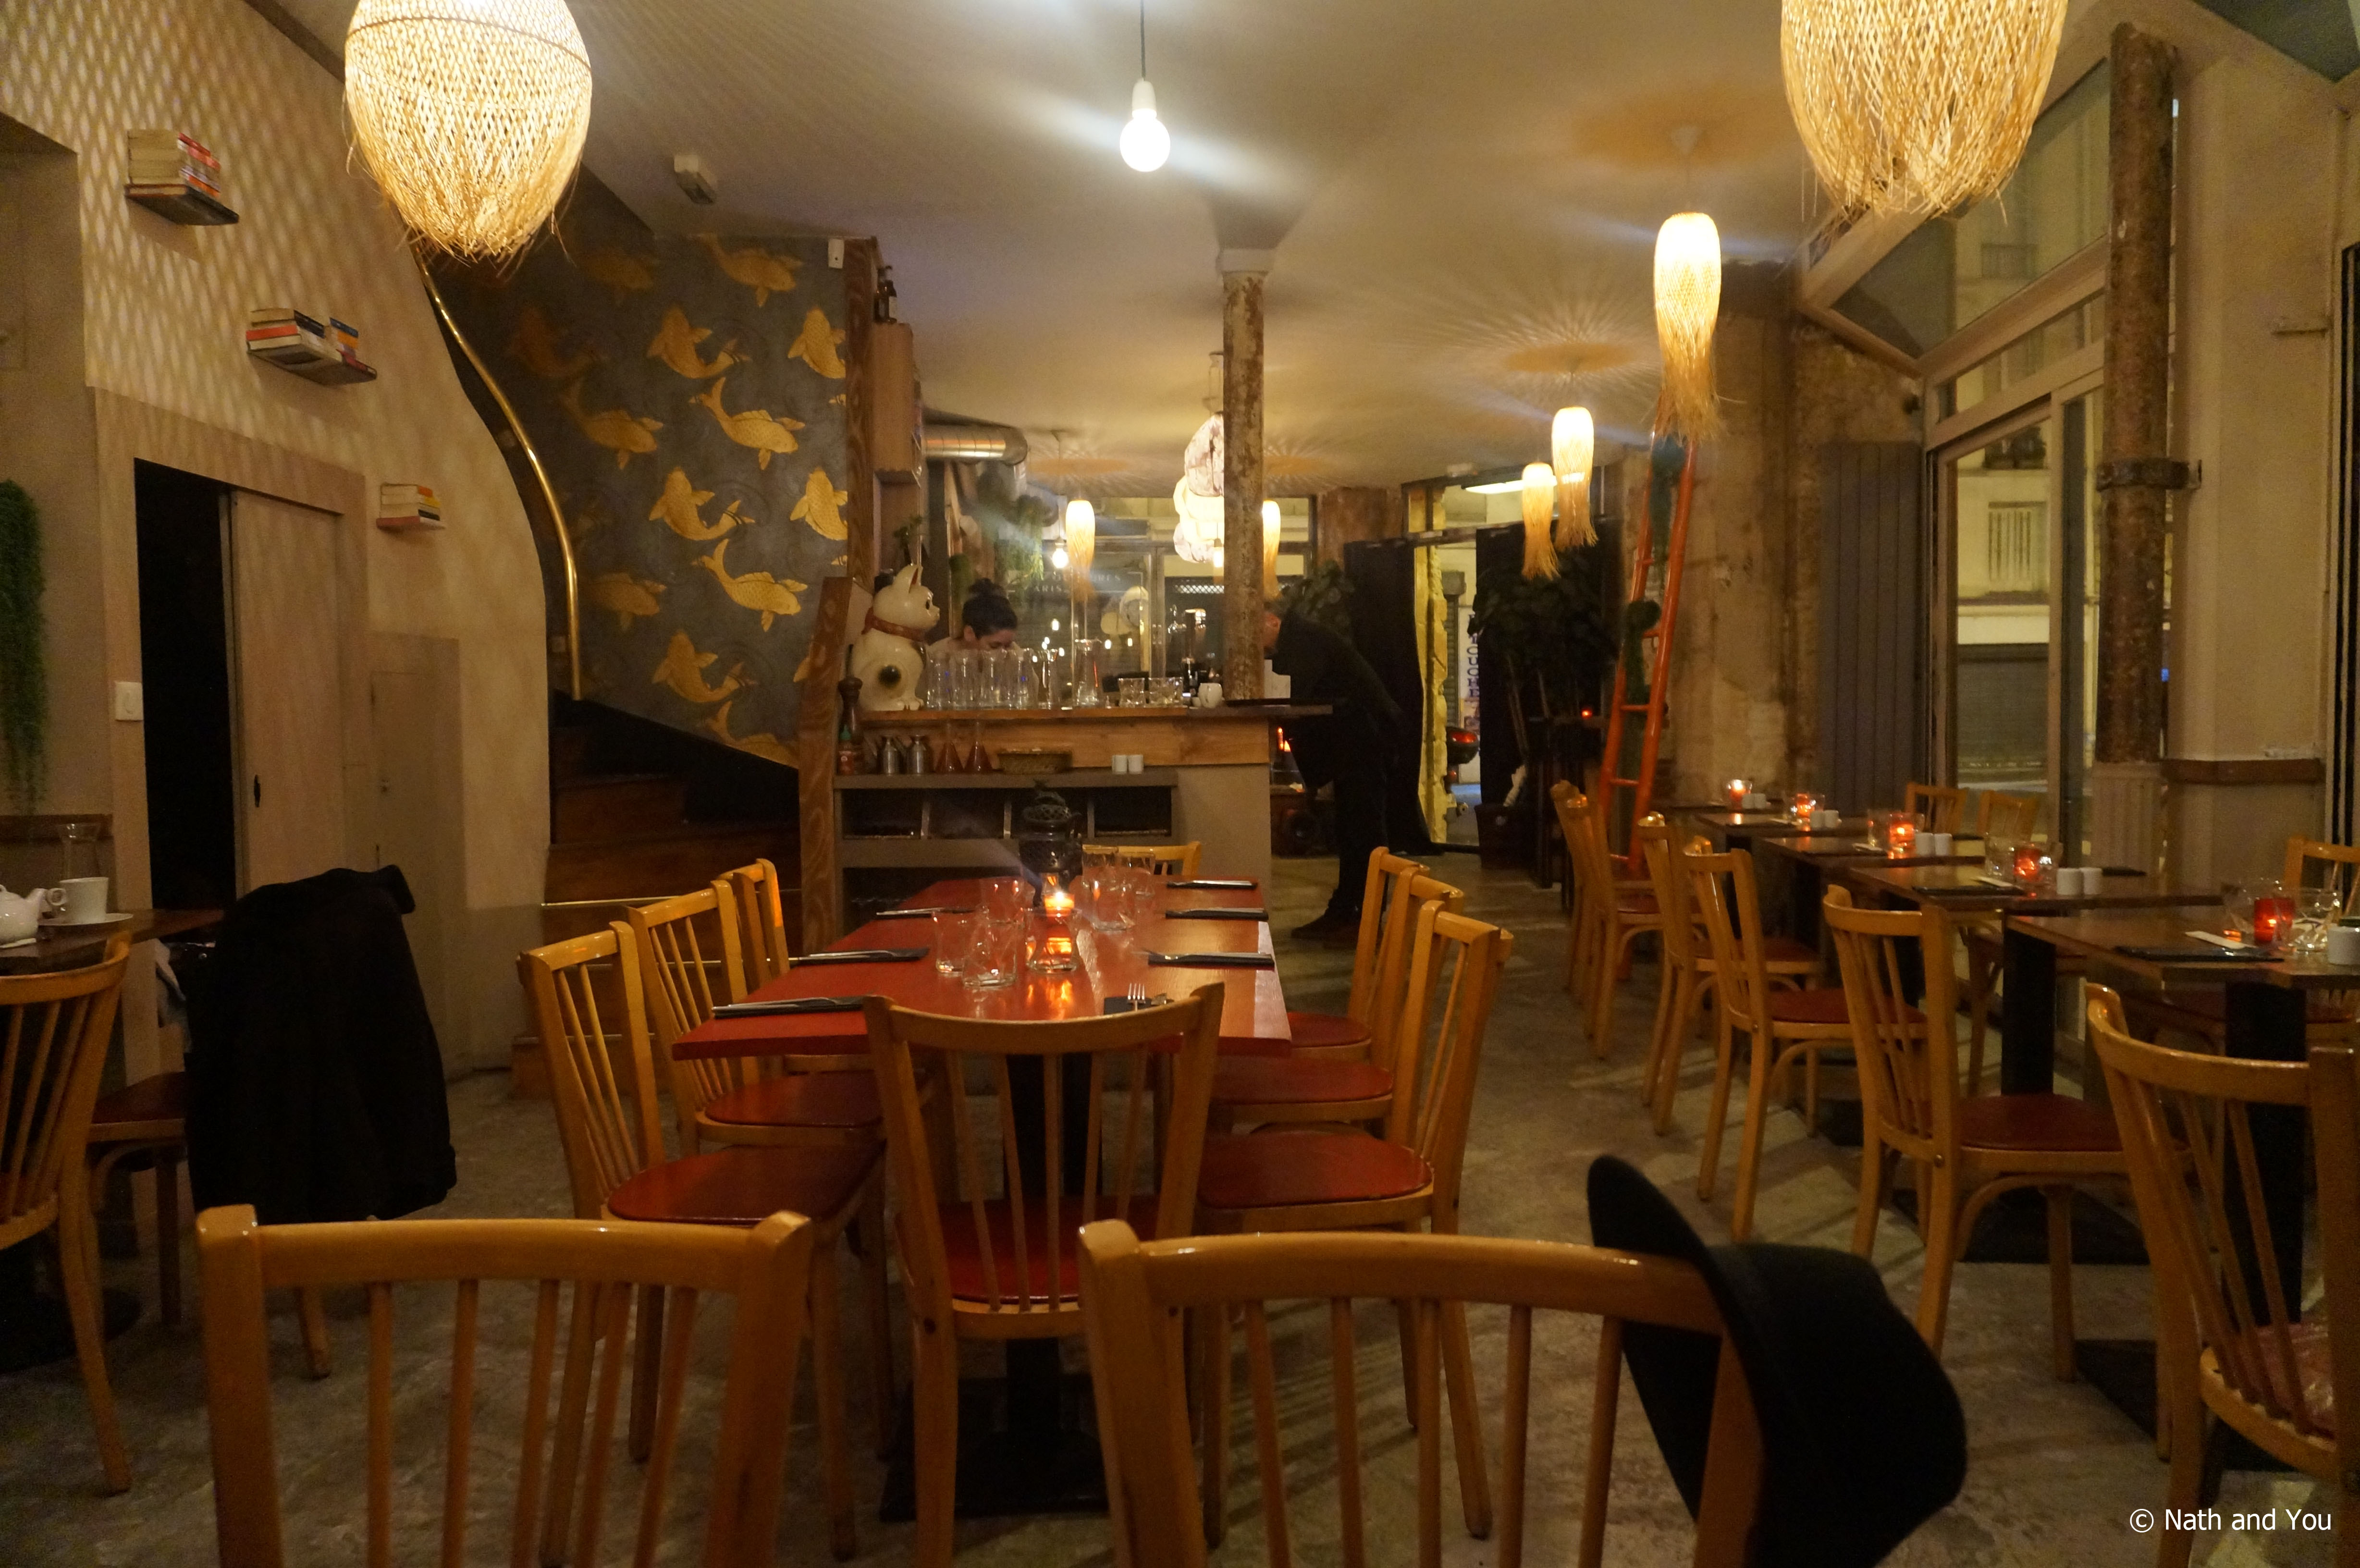 bistrot-john-wen-nath-and-you